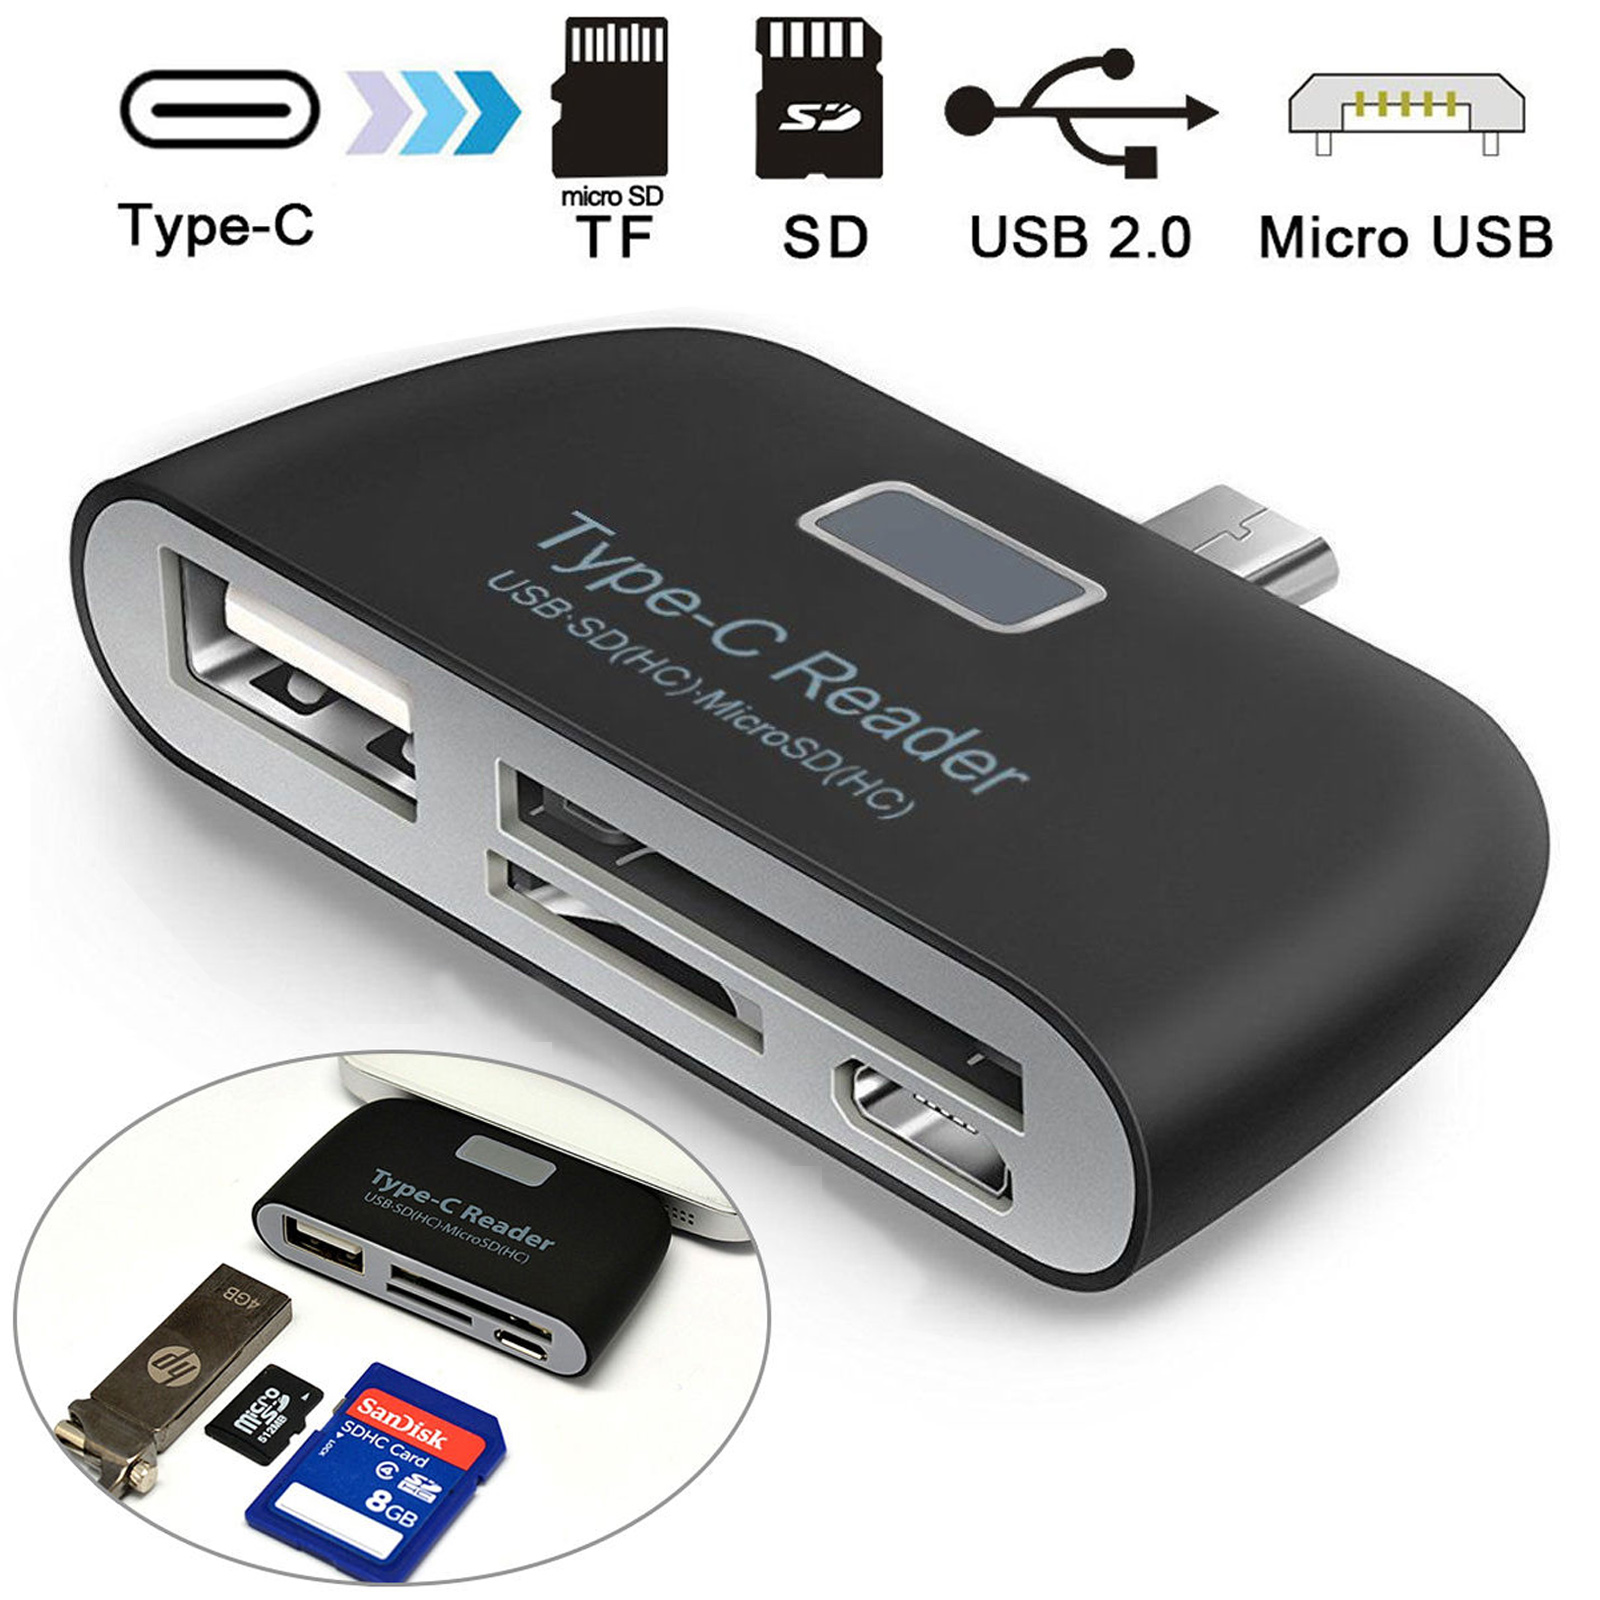 4-in-1-Type-C-Card-Reader-USB-TF-SD-OTG-HUB-Adapter-For-Samsung-S8-LG-G6-Macbook